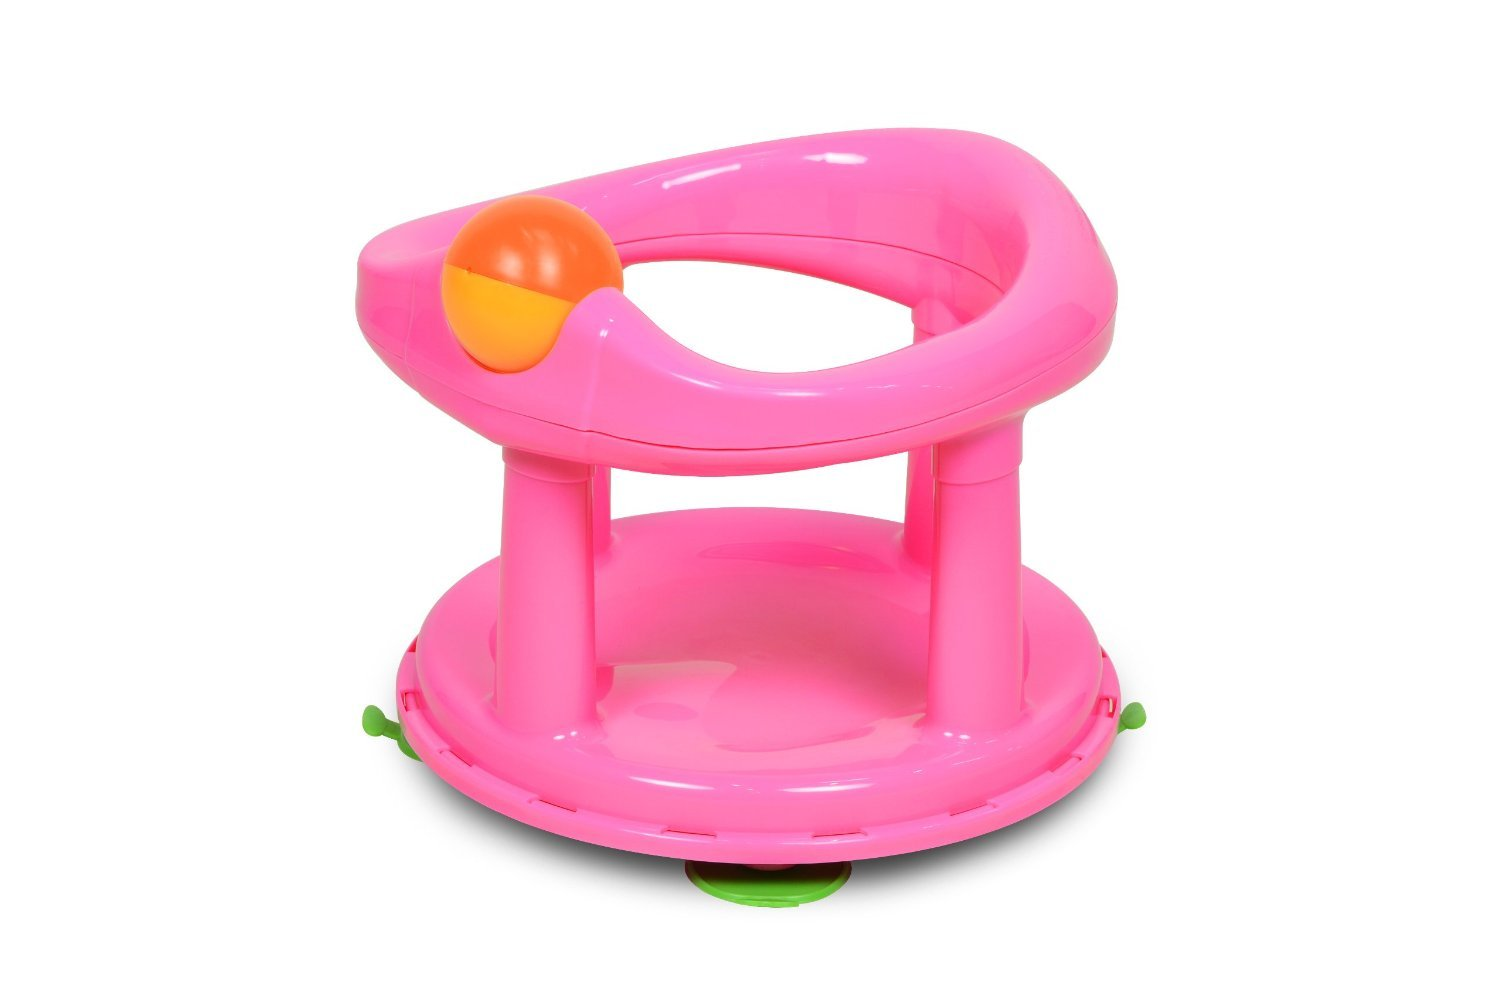 Safety 1st Swivel Bath Seat - Pink: Amazon.ca: Electronics